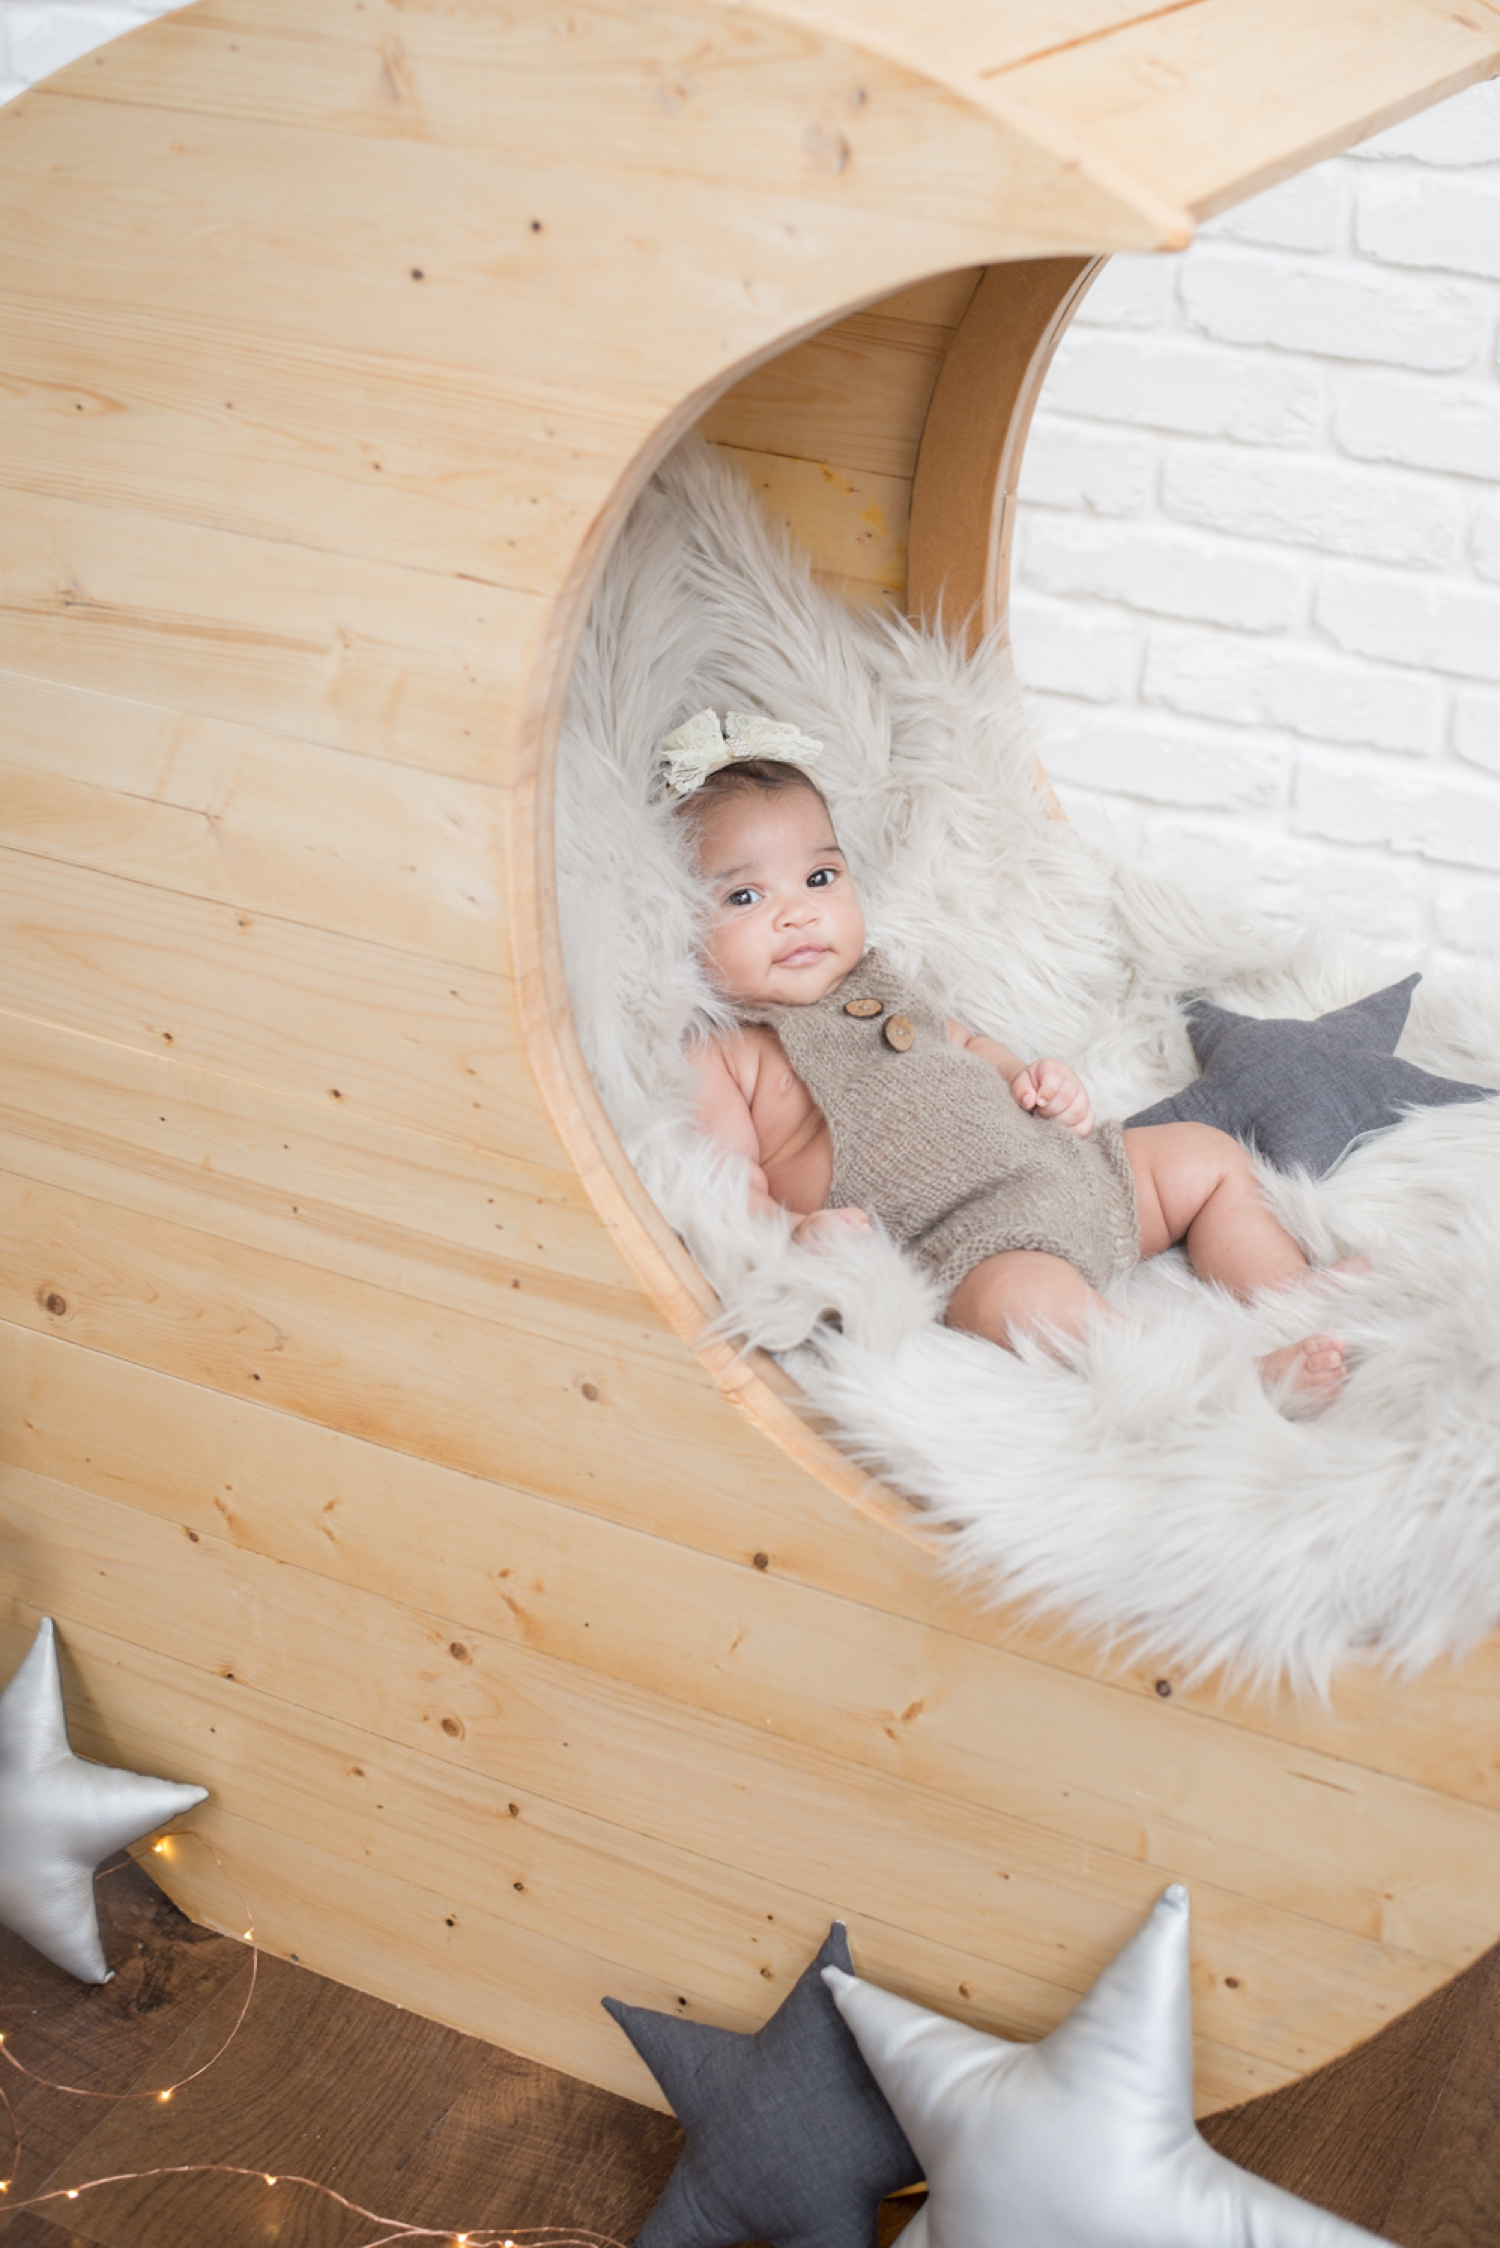 Month-old baby smiles on a faux fur blanket during a Chicago baby photo session.